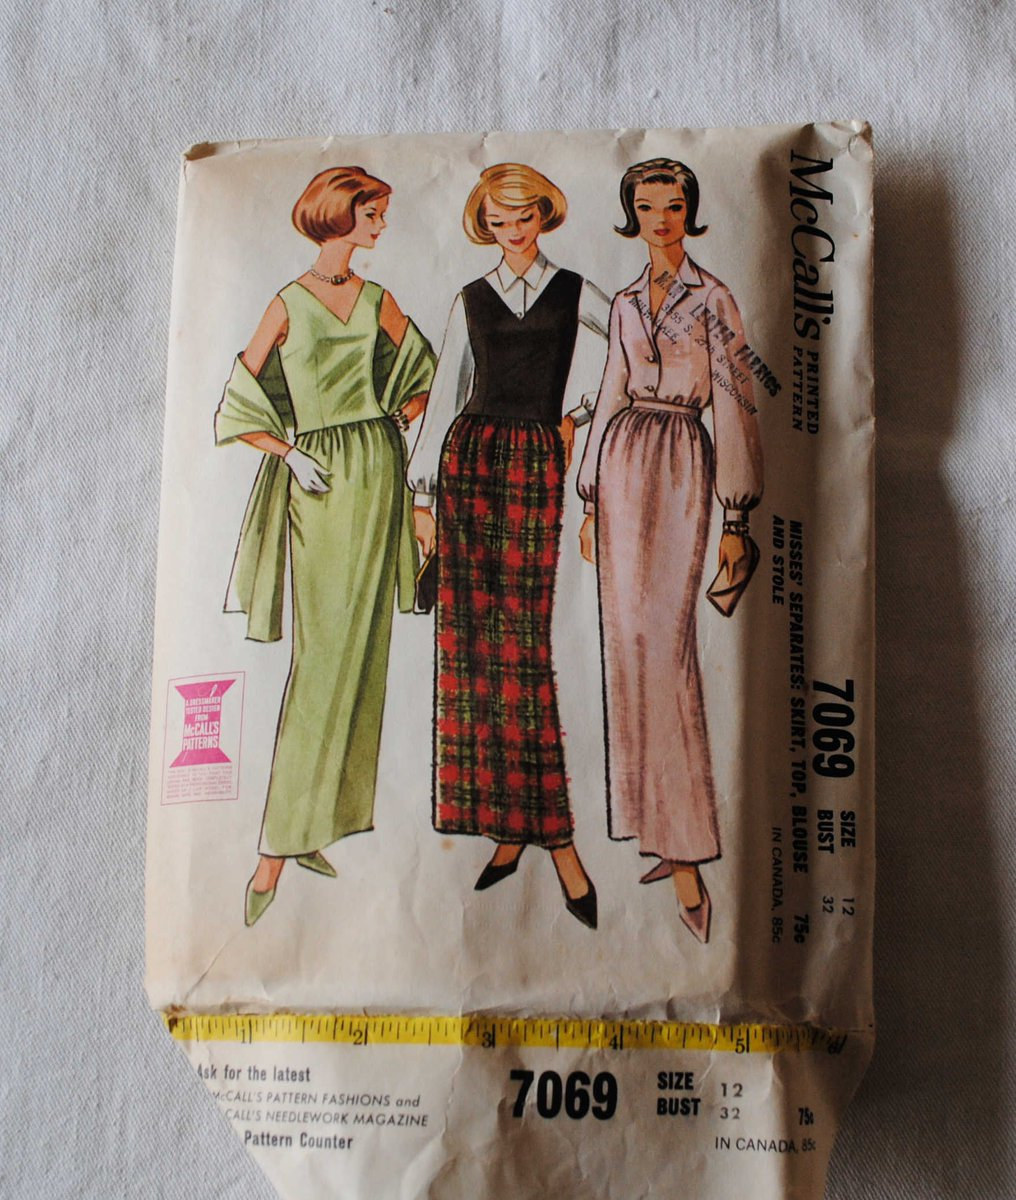 Ksf Designs Vintage On Twitter Sharing The Latest Addition To My Etsy Shop Size 12 Vintage 1960s Mccalls 7069 Sewing Pattern Misses Conservative Evening Gown Cocktail Dress Stole Blouse Skirt Bust 32